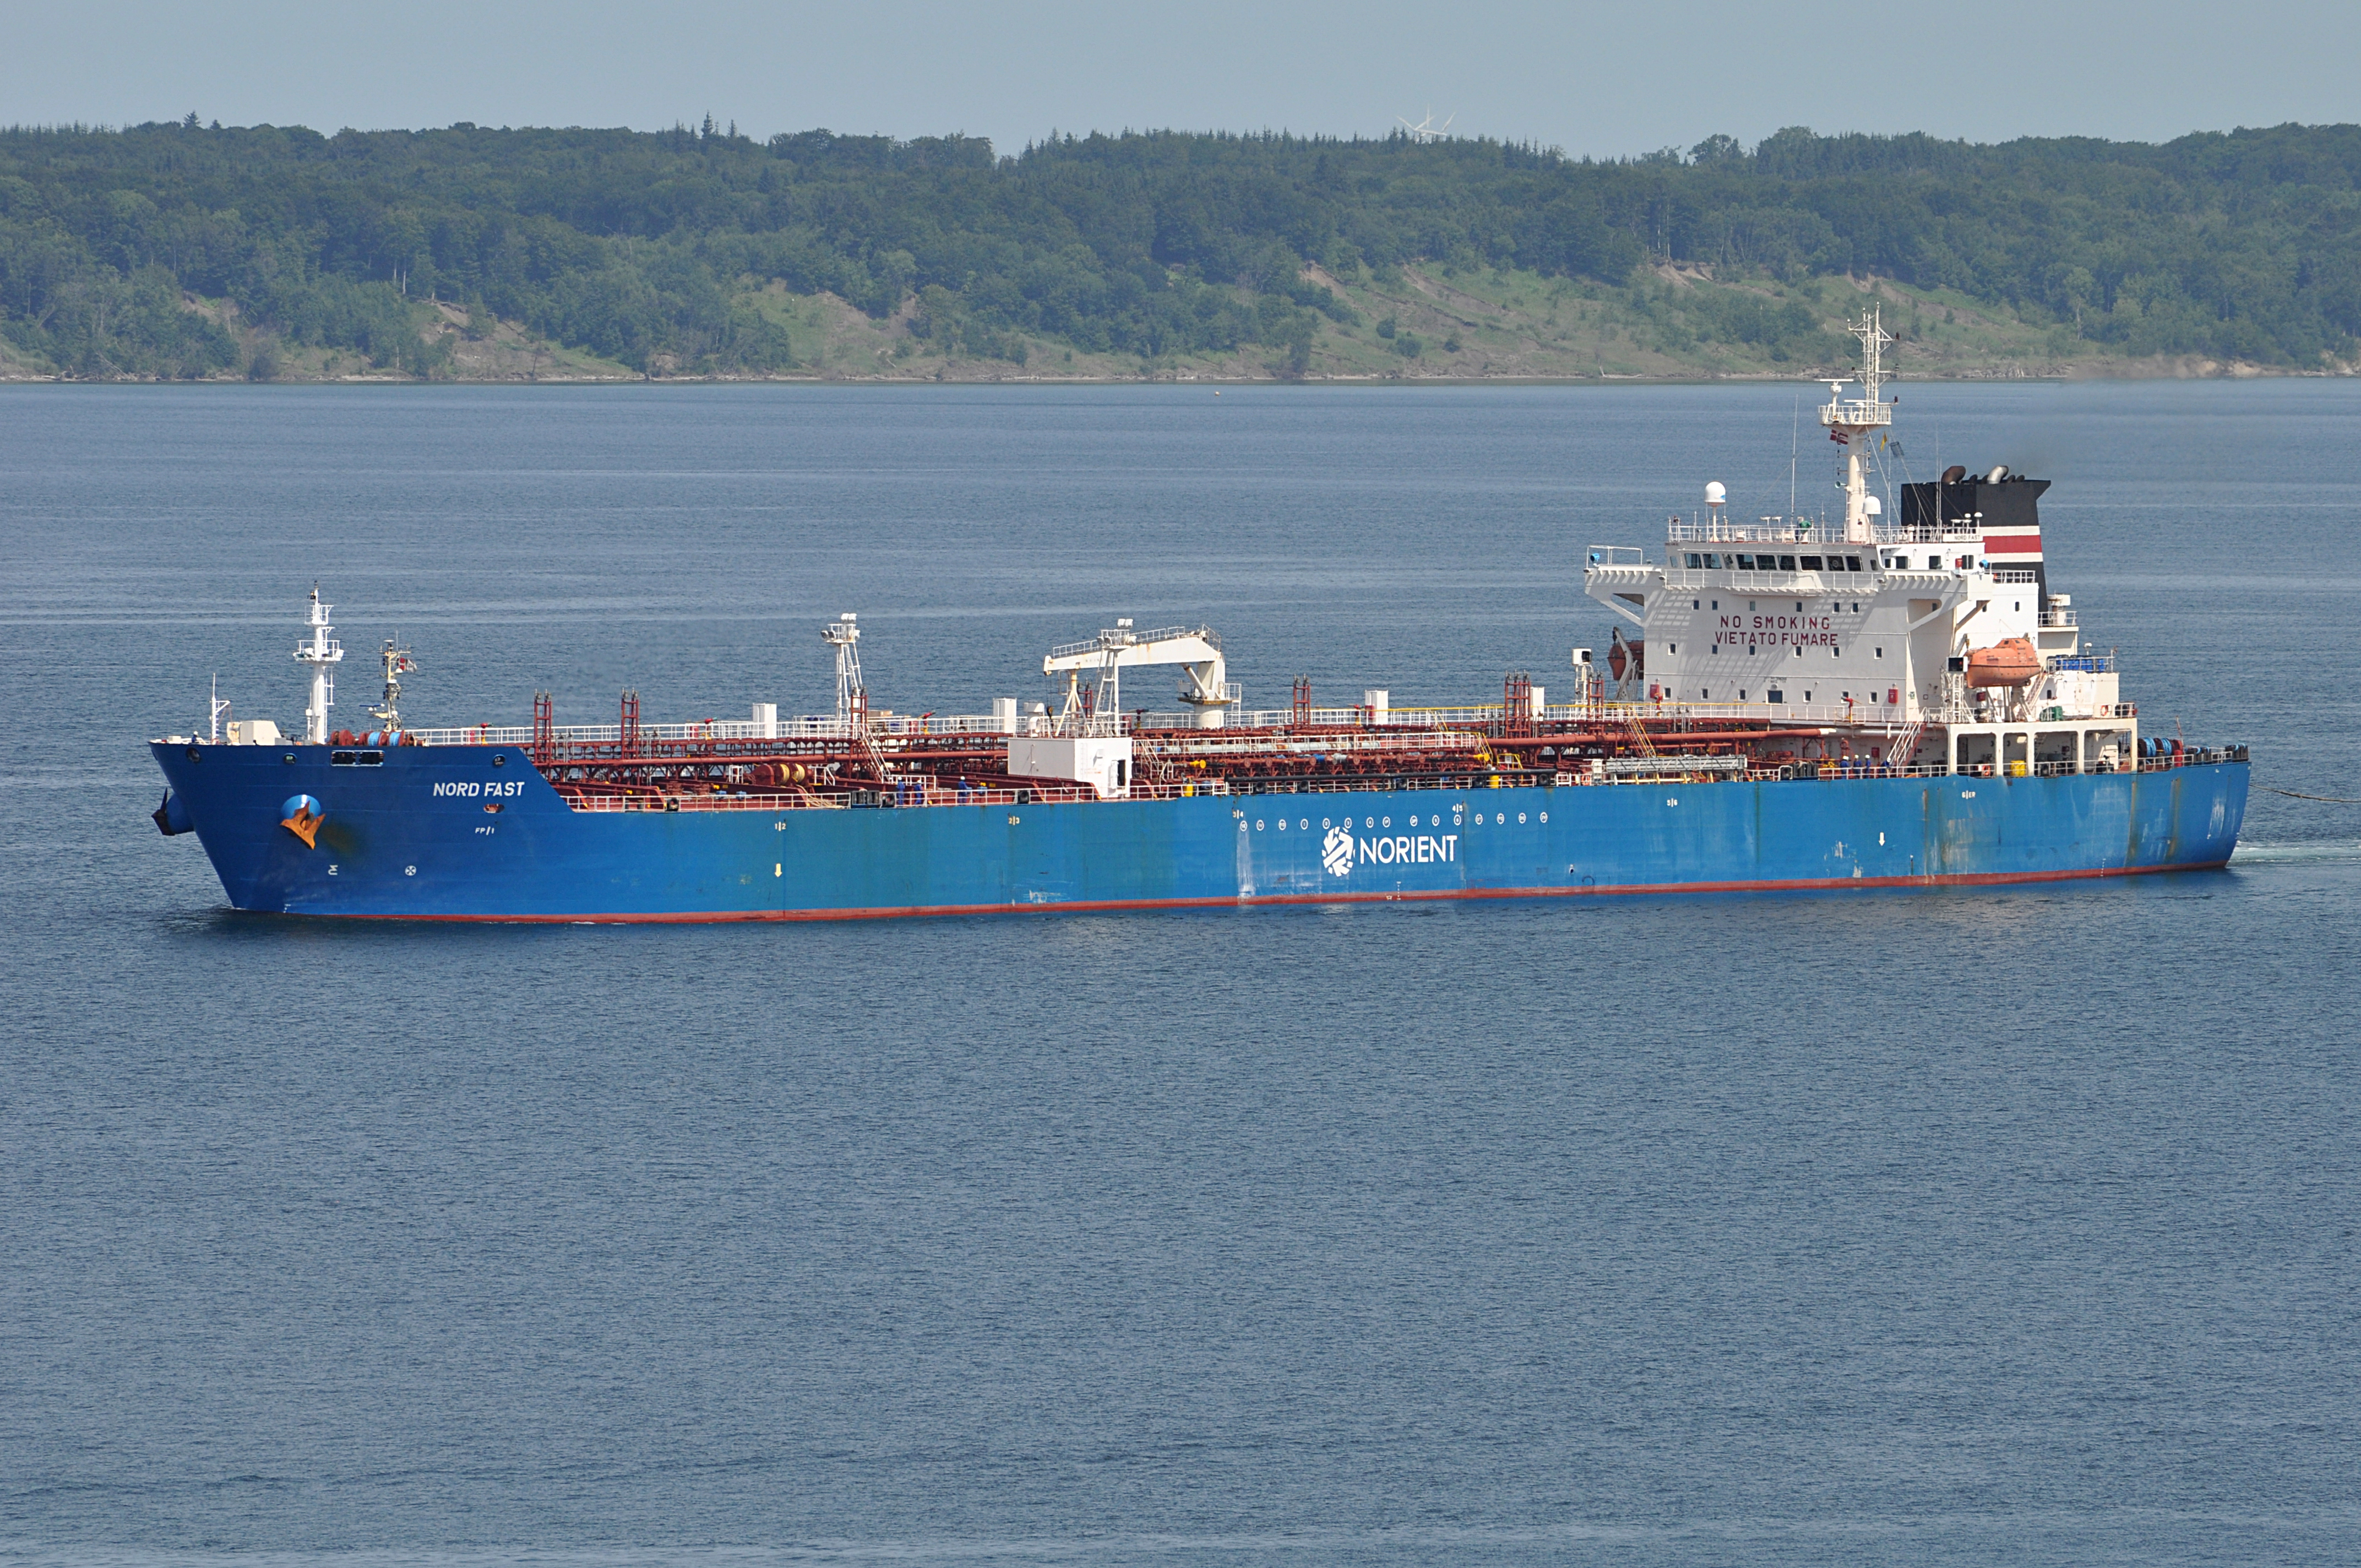 Nord Fast.1.ajb.jpg English: Tanker Nord Fast approaching port of Fredericia, Denmark. Date 8 July 2013, 12:24:36 Source Own work Author Ajepbah